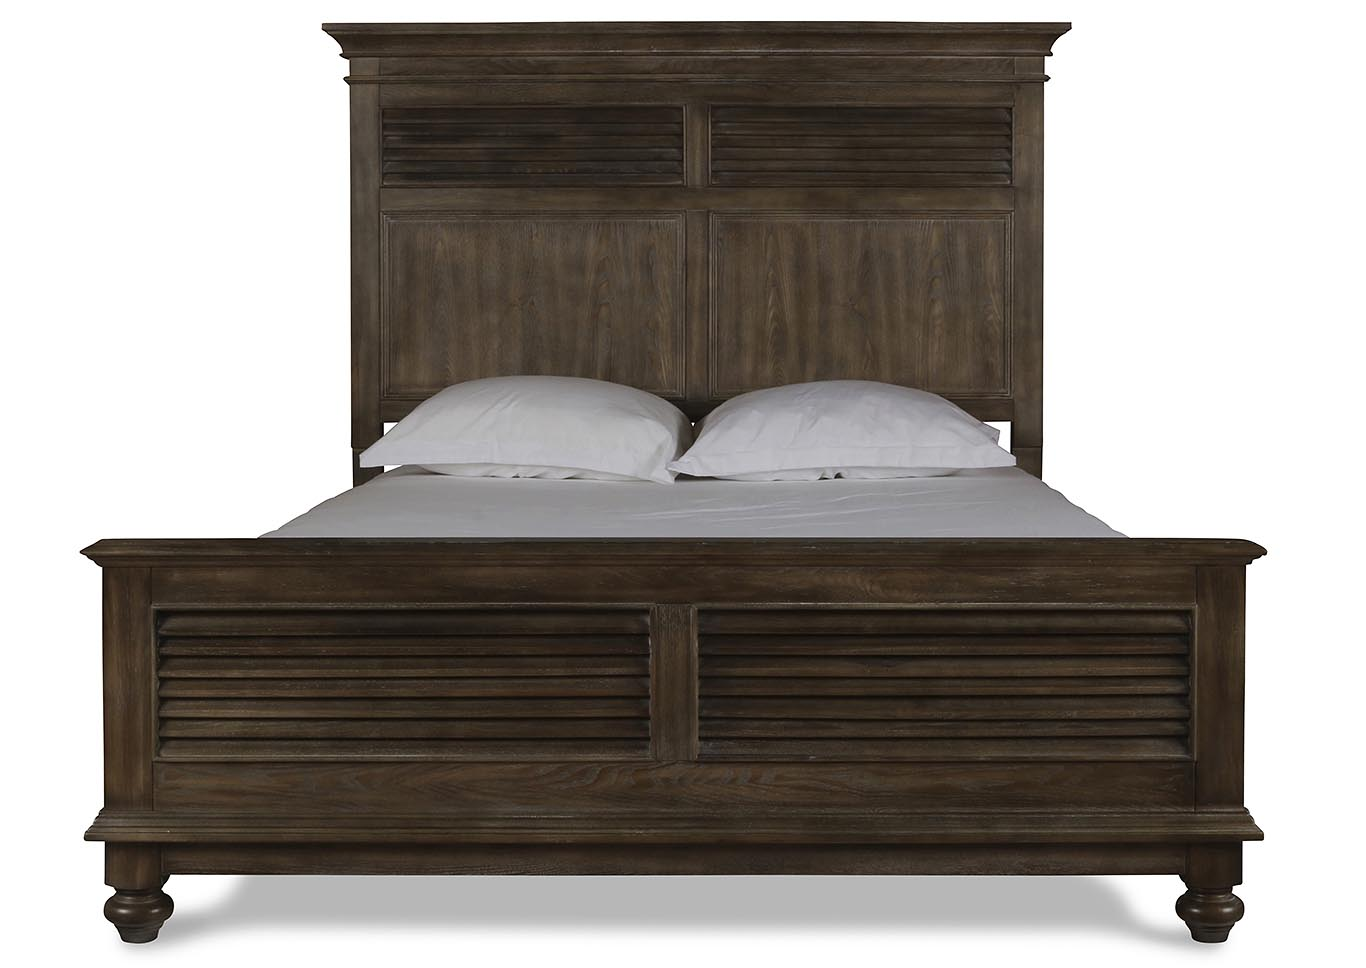 Lakeport Pewter King Bed,New Classic